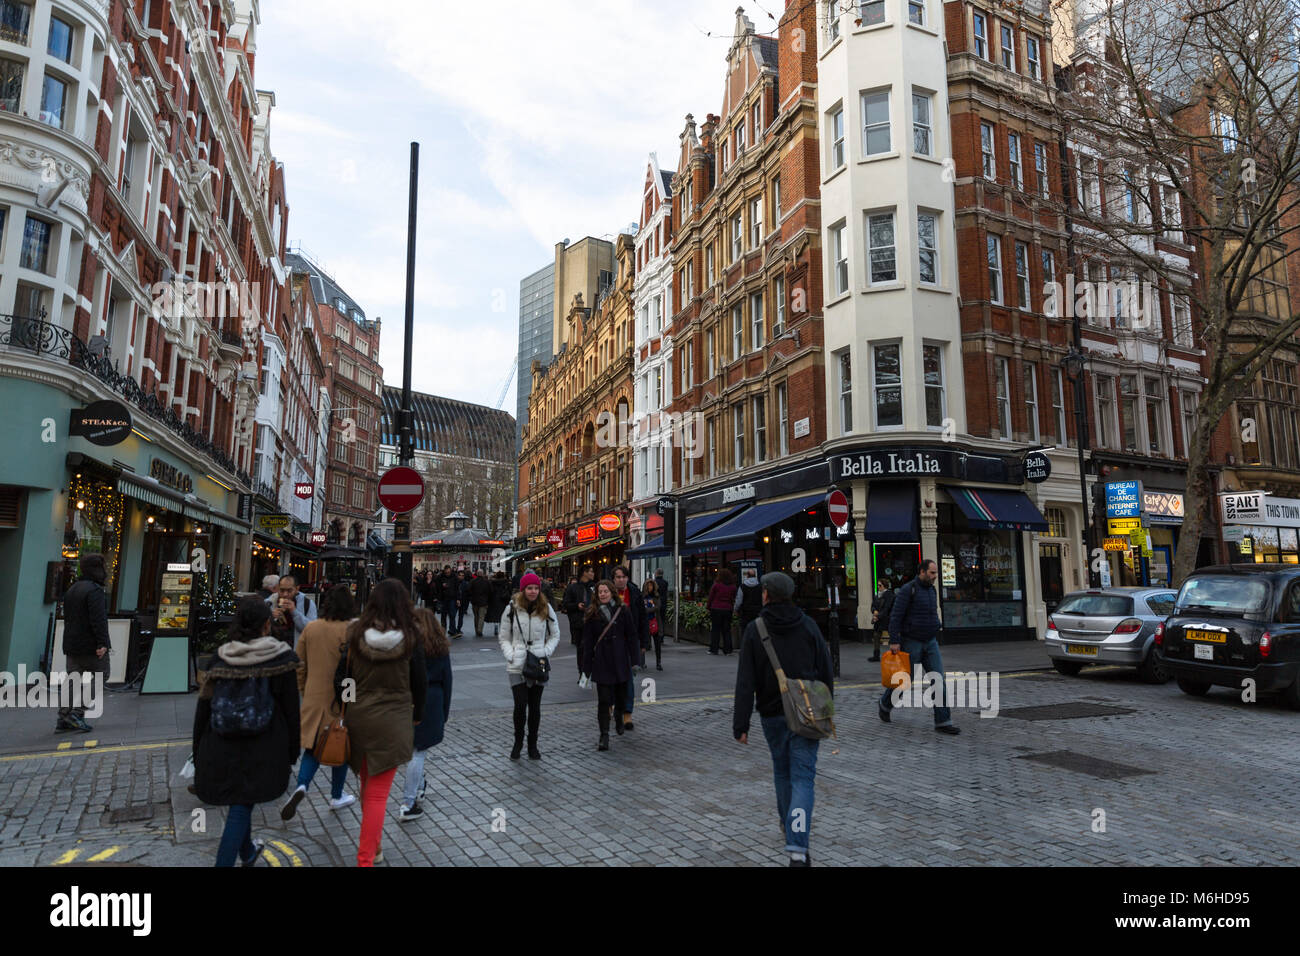 View of buildings and people outside Leicester Square - London, England - UK - Stock Image